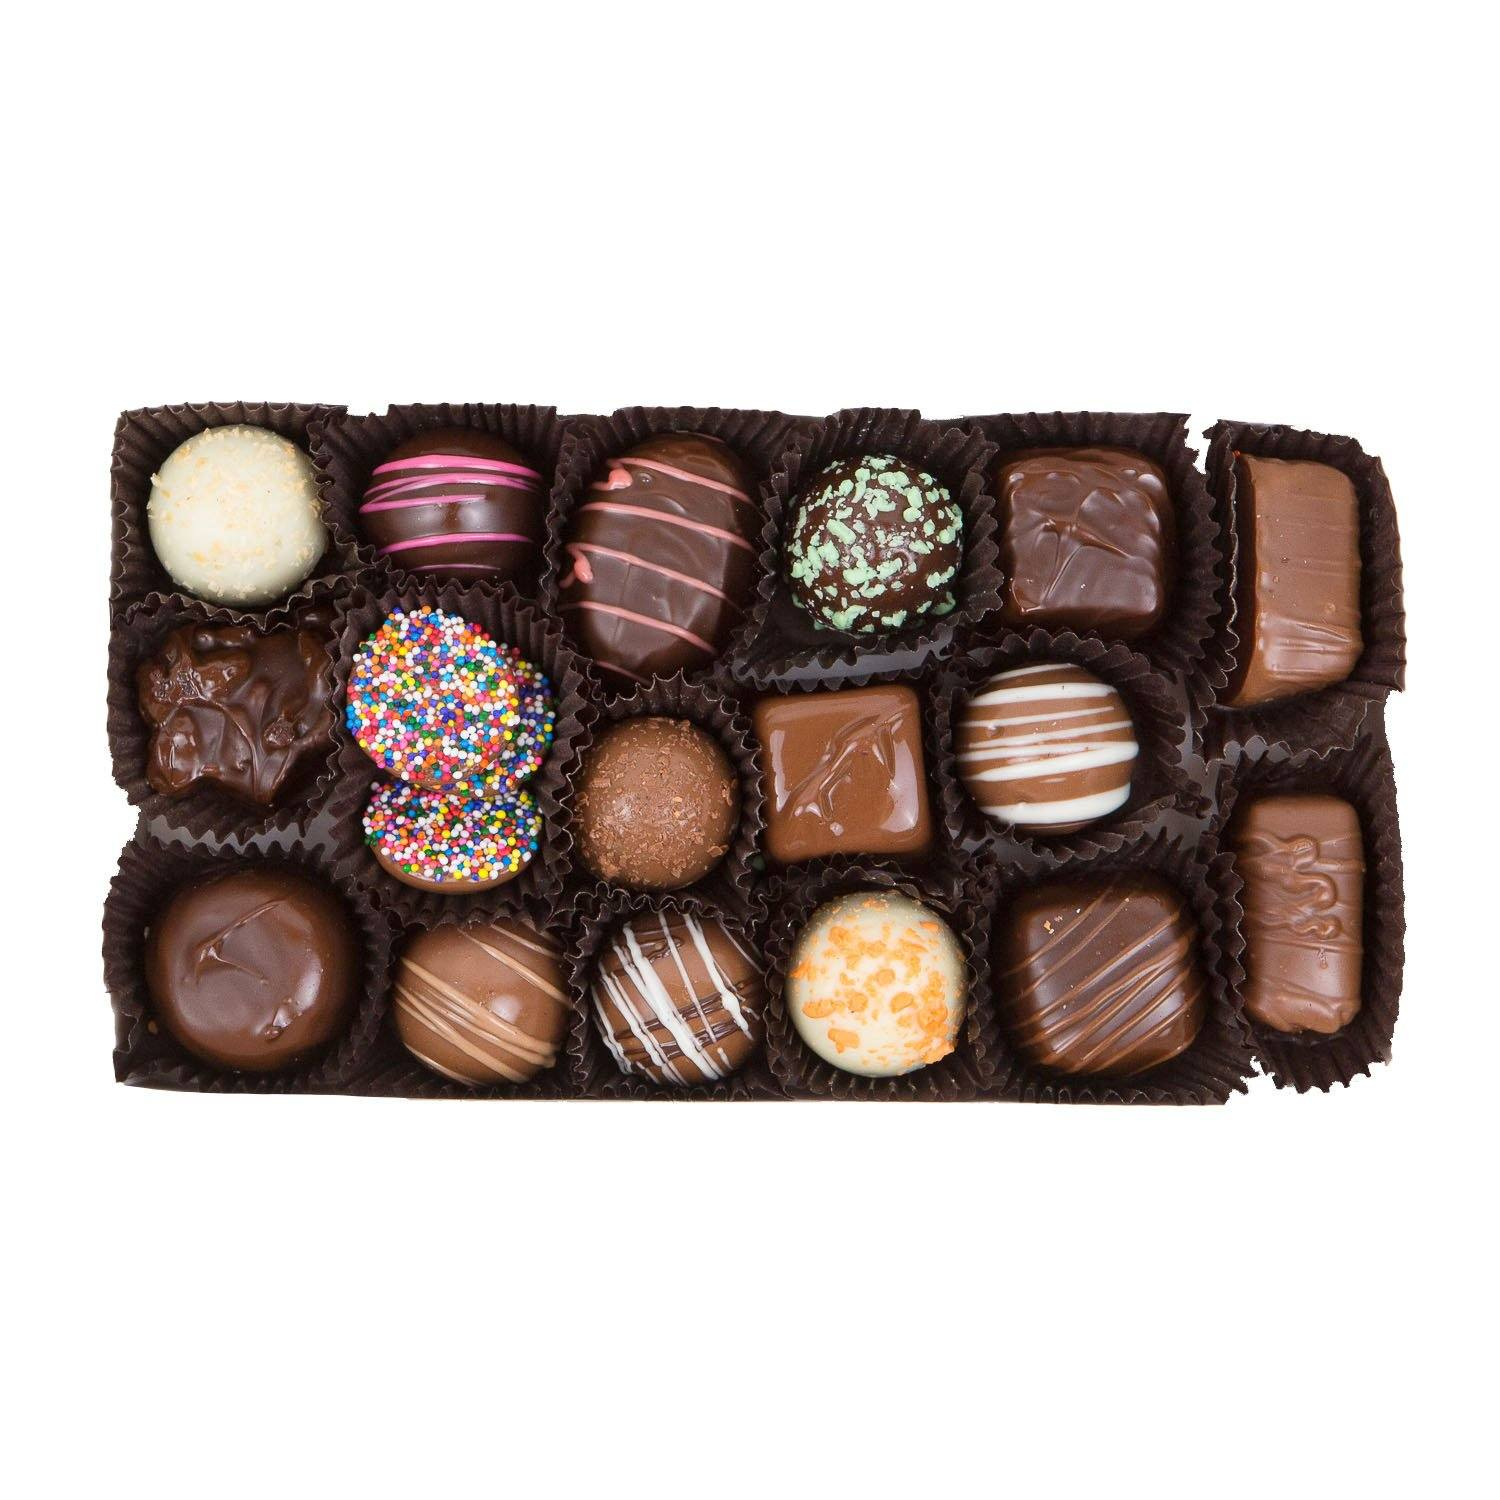 Gift Ideas for People Who Have Everything - Assorted Chocolate Gift Box - Jackie's Chocolate (1487133245475)